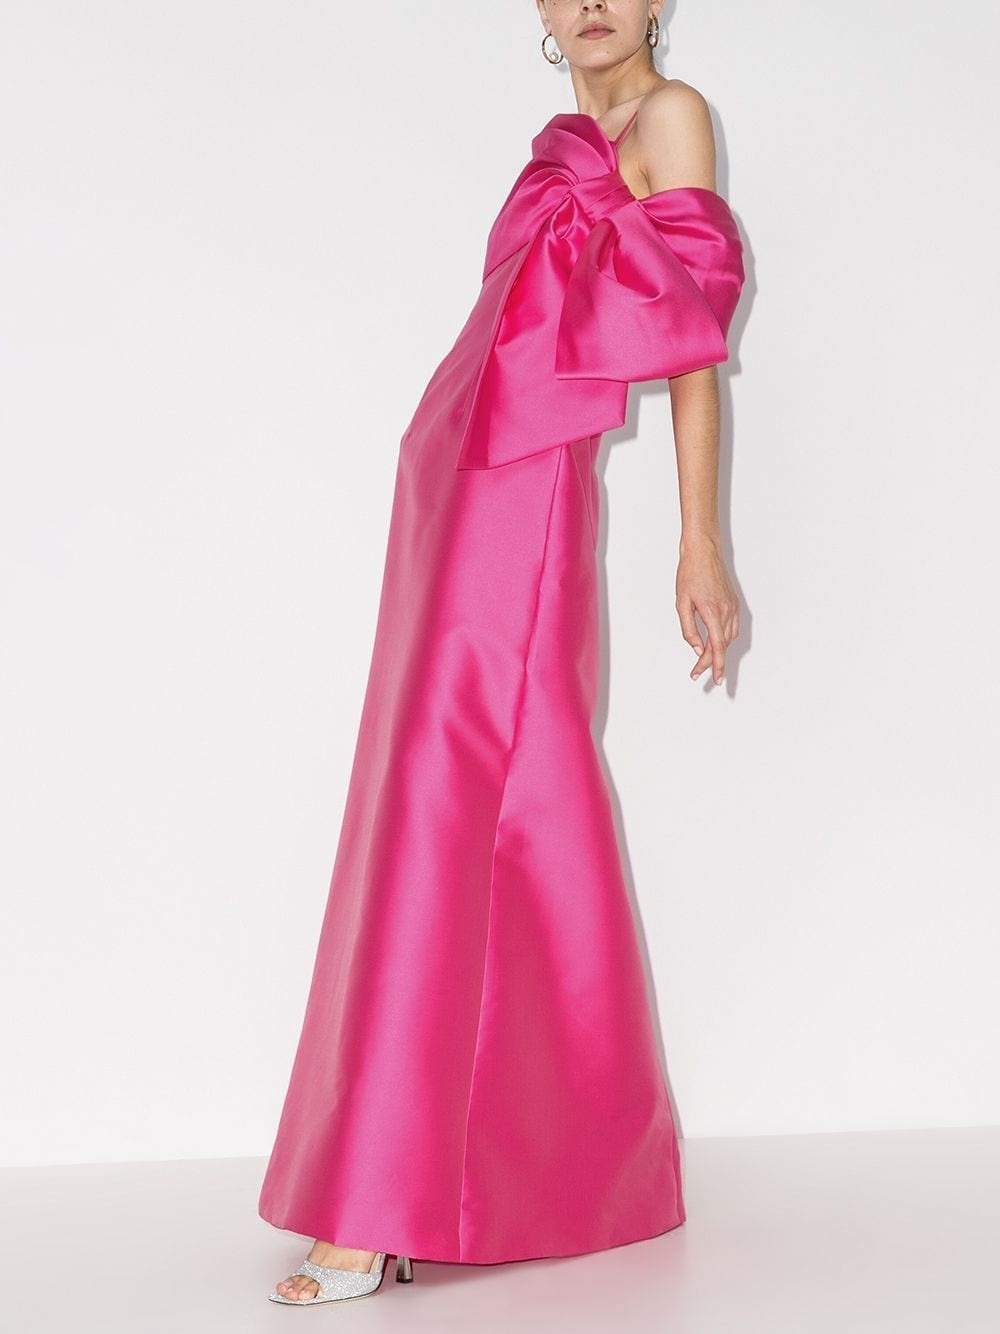 CAROLINA HERRERA Off-the-shoulder Bow Gown